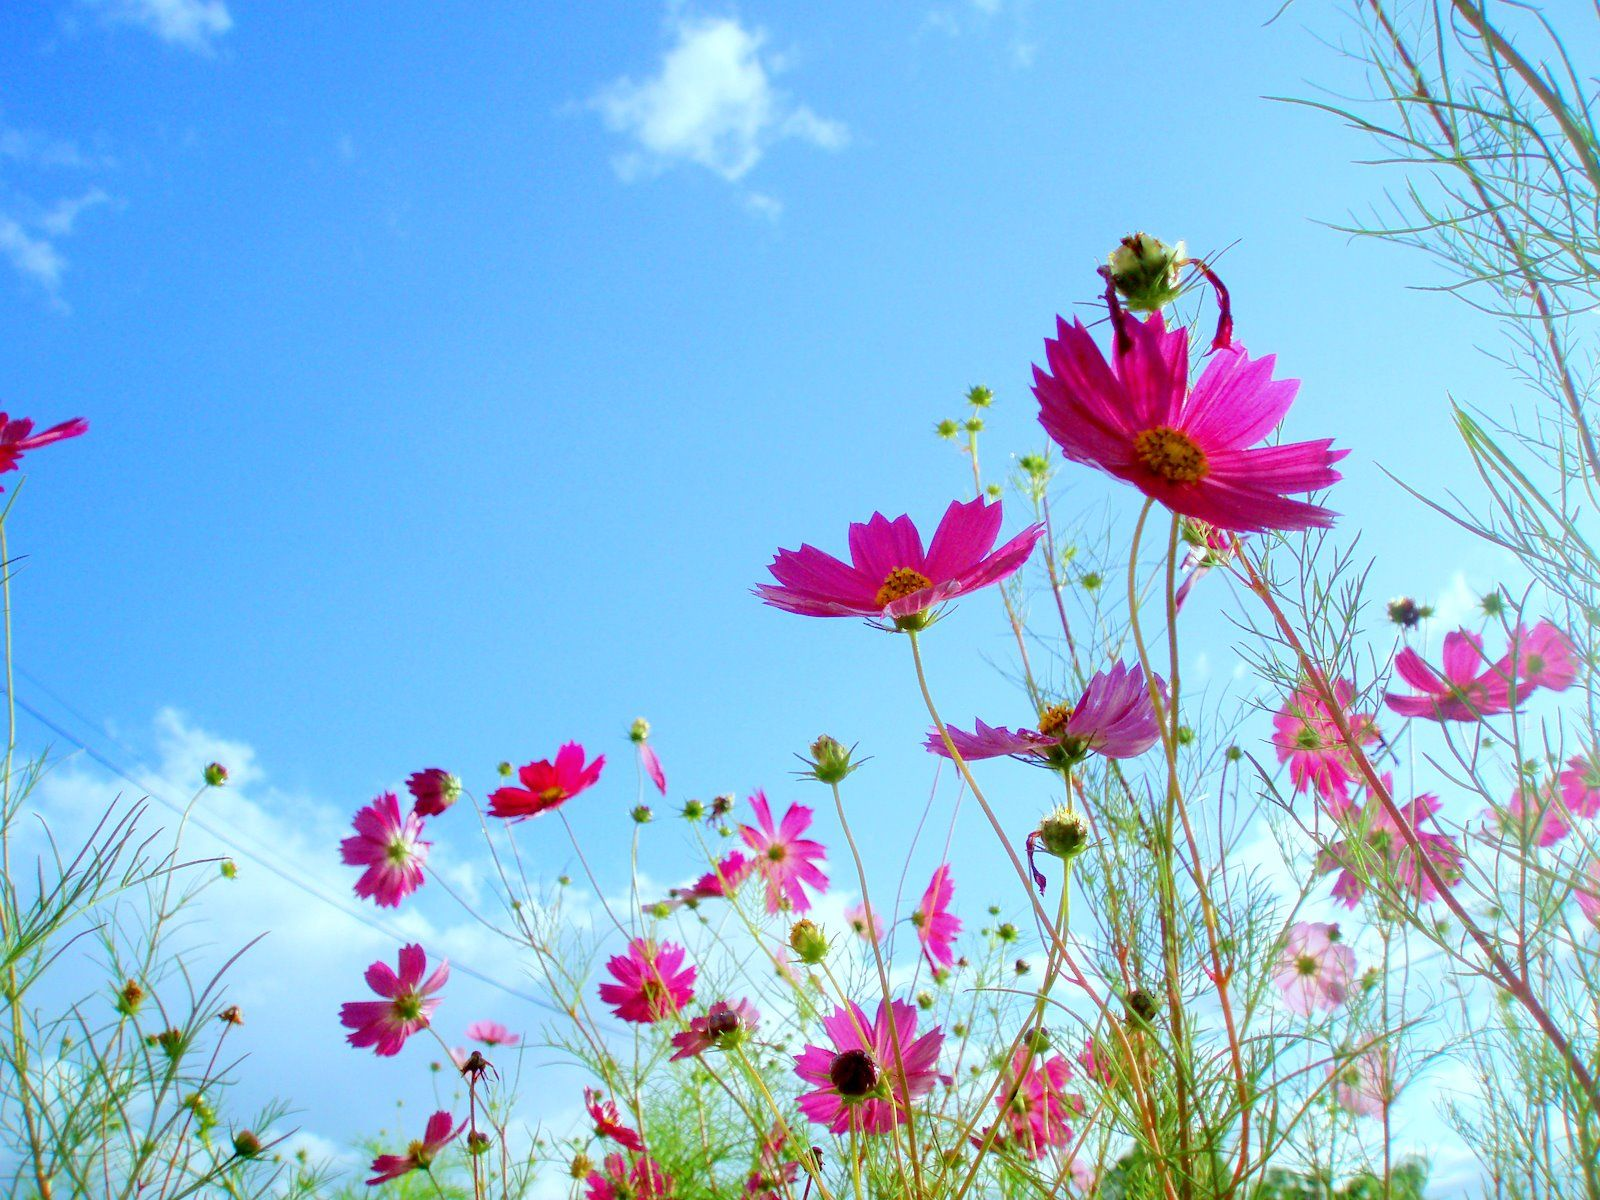 amazing flowers background 1600x1200 - photo #35